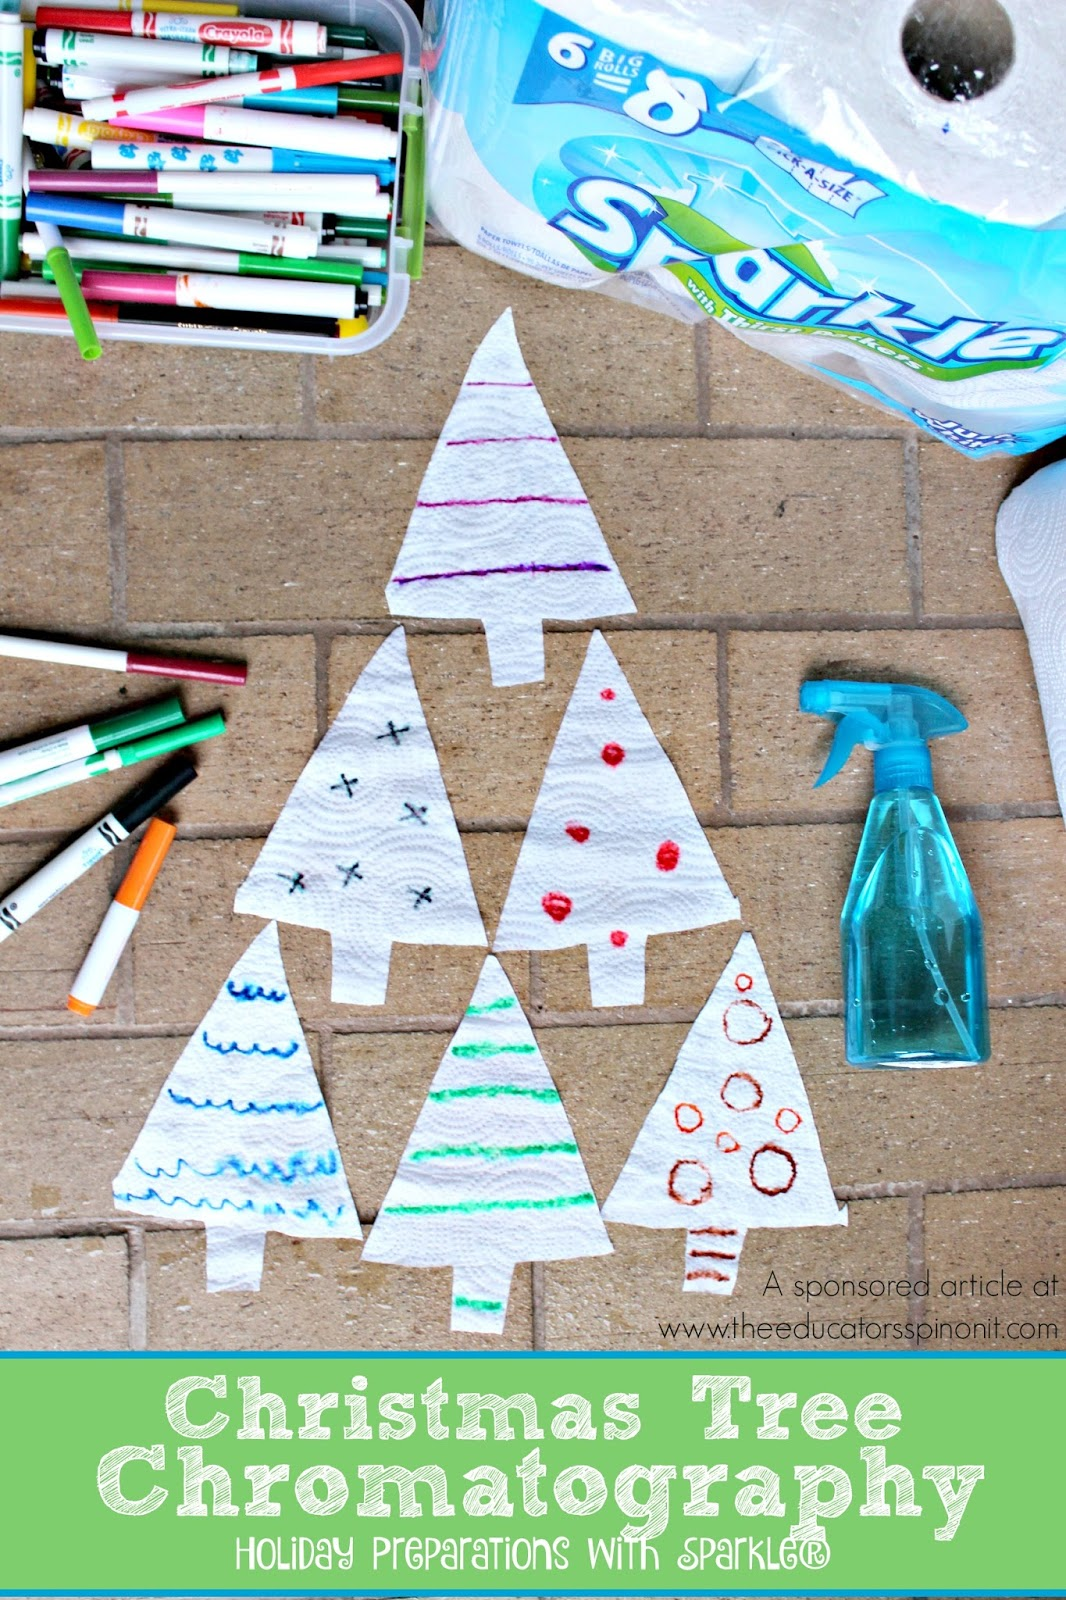 Christmas Tree Chromatography Holiday Preparations With